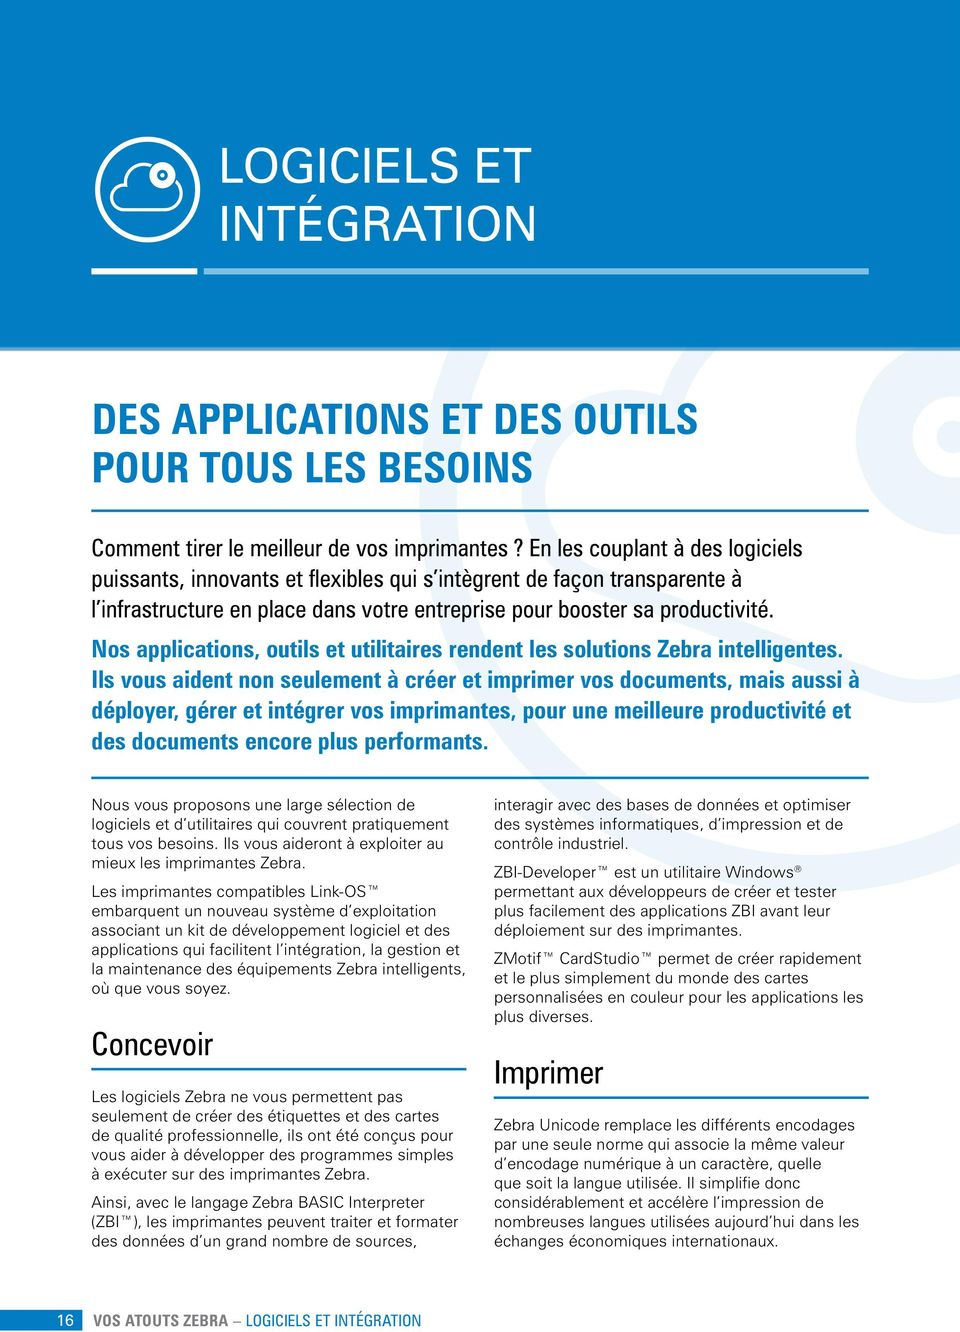 Nos applications, outils et utilitaires rendent les solutions intelligentes.